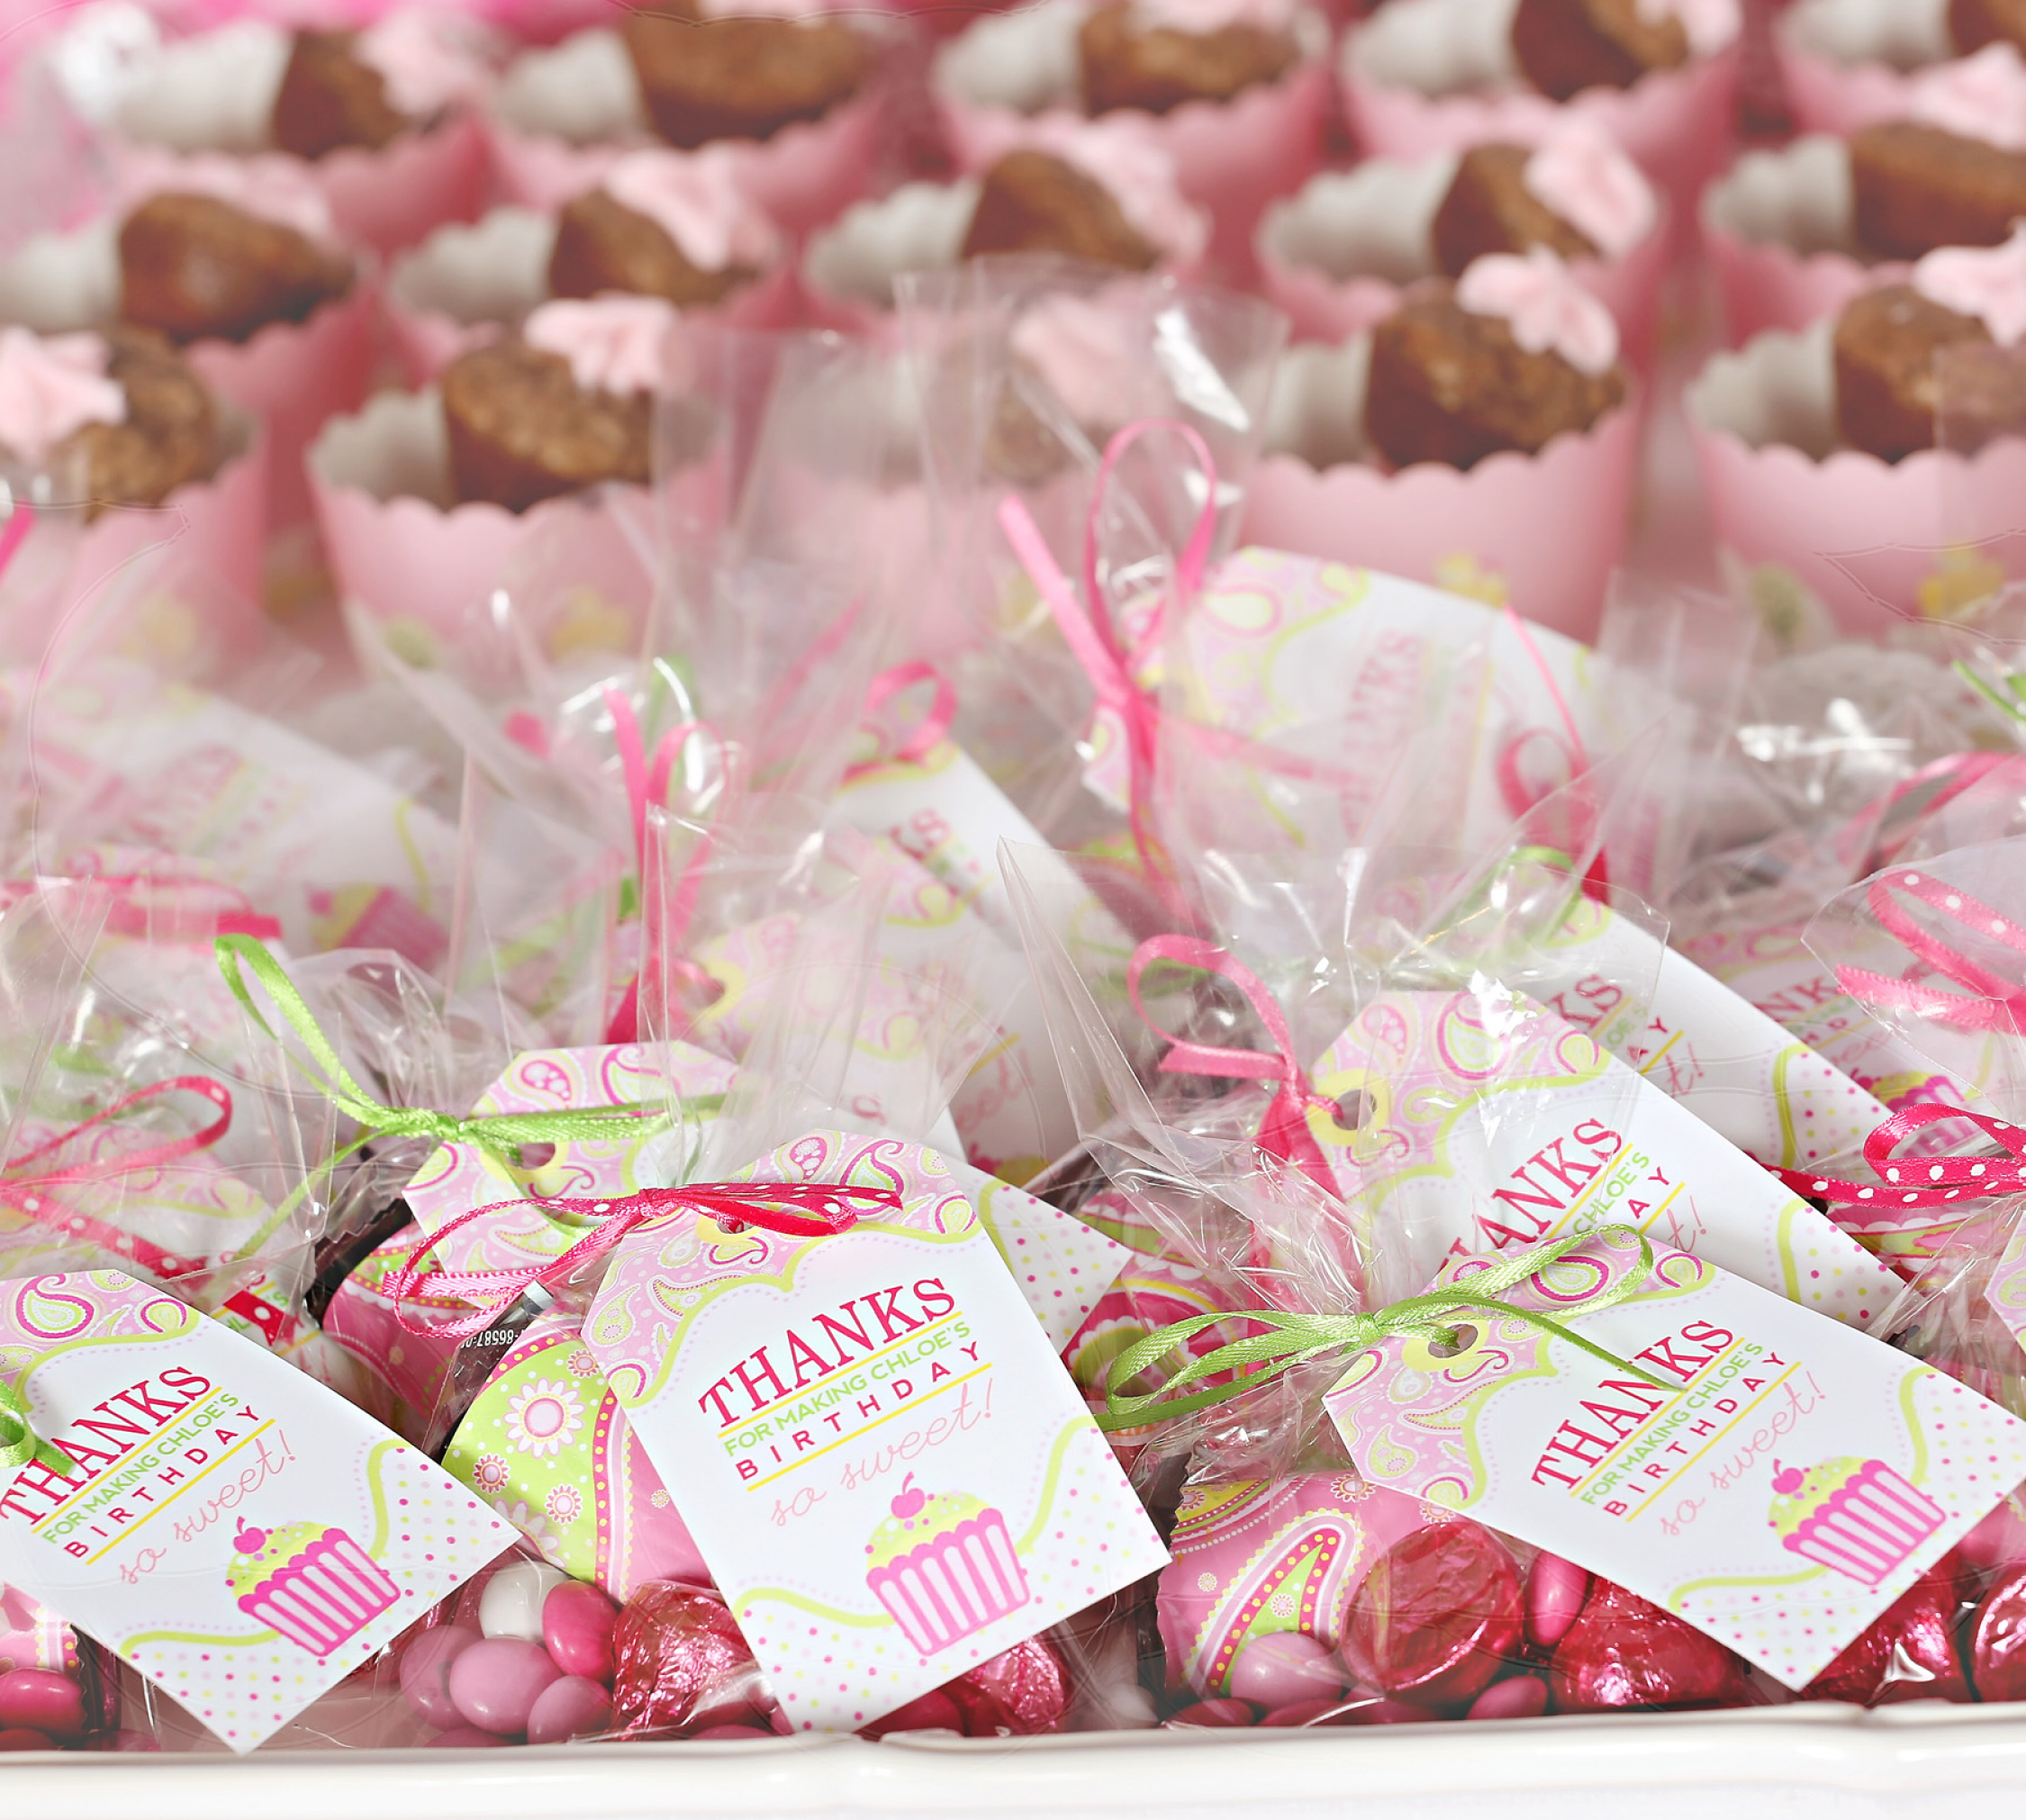 Party Favor Ideas: A Cupcake Themed 1st Birthday Party With Paisley And Polka